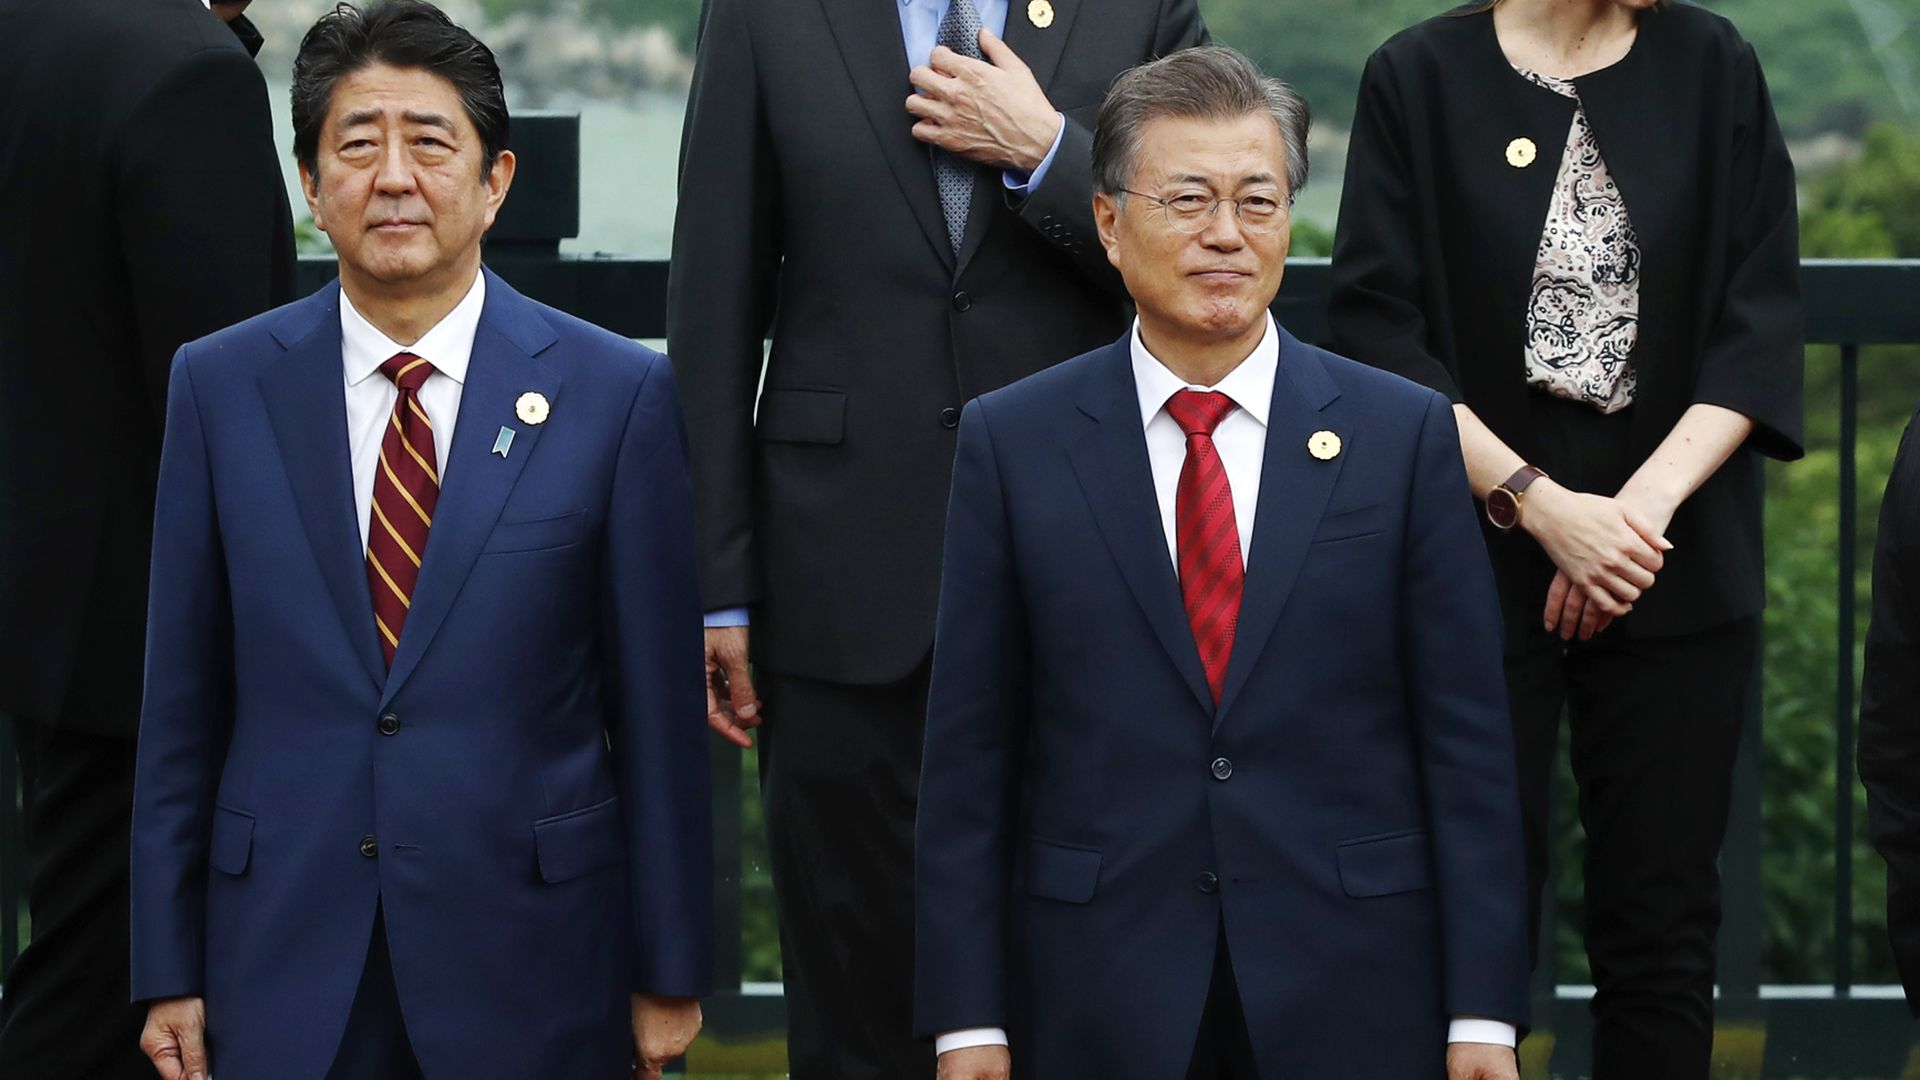 U.S. fails to stop South Korea from axing intelligence deal with Japan